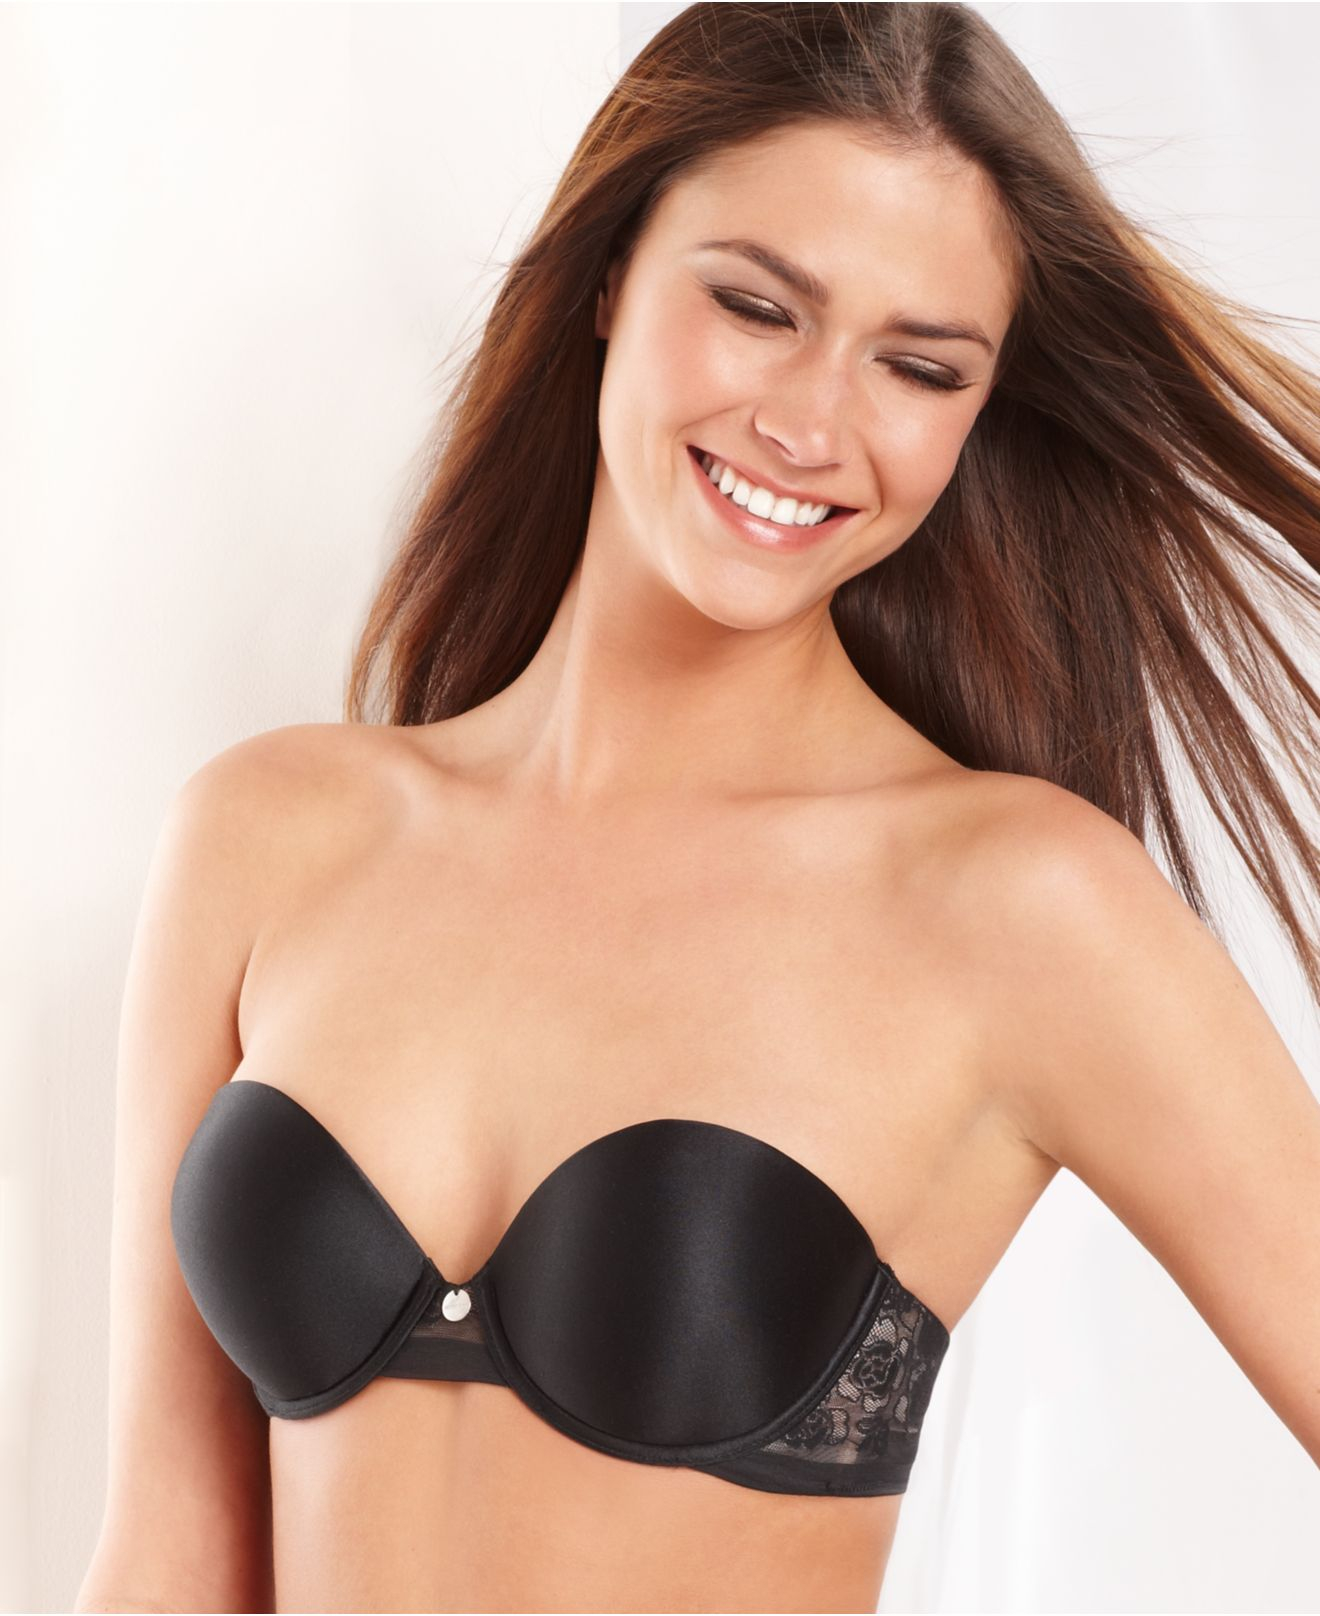 c49b731eb1 Lyst - DKNY Super Glam Add 2 Cup Sizes Push Up Bra 458111 in Black